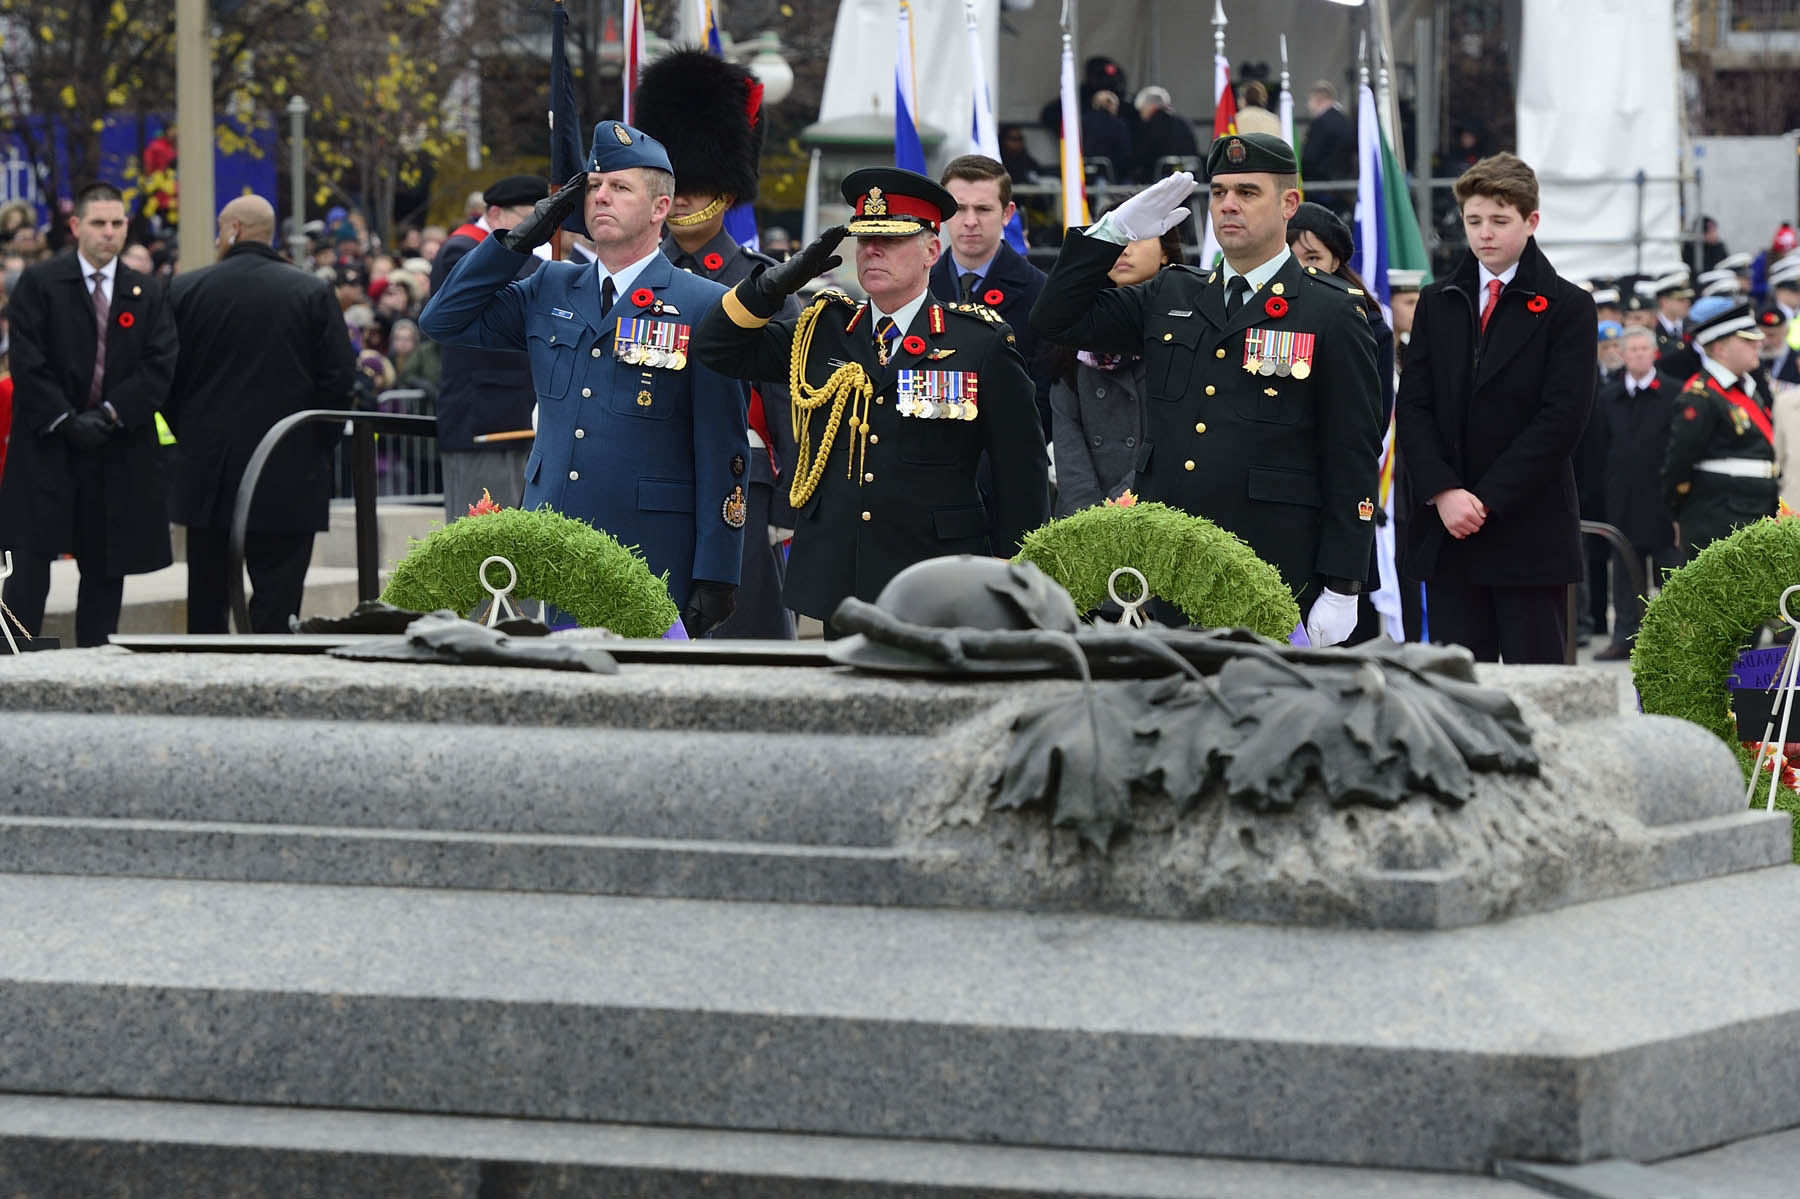 The Tomb of the Unknown Soldier is an important symbol to honour and remember the sacrifices of our Canadian Armed Forces.